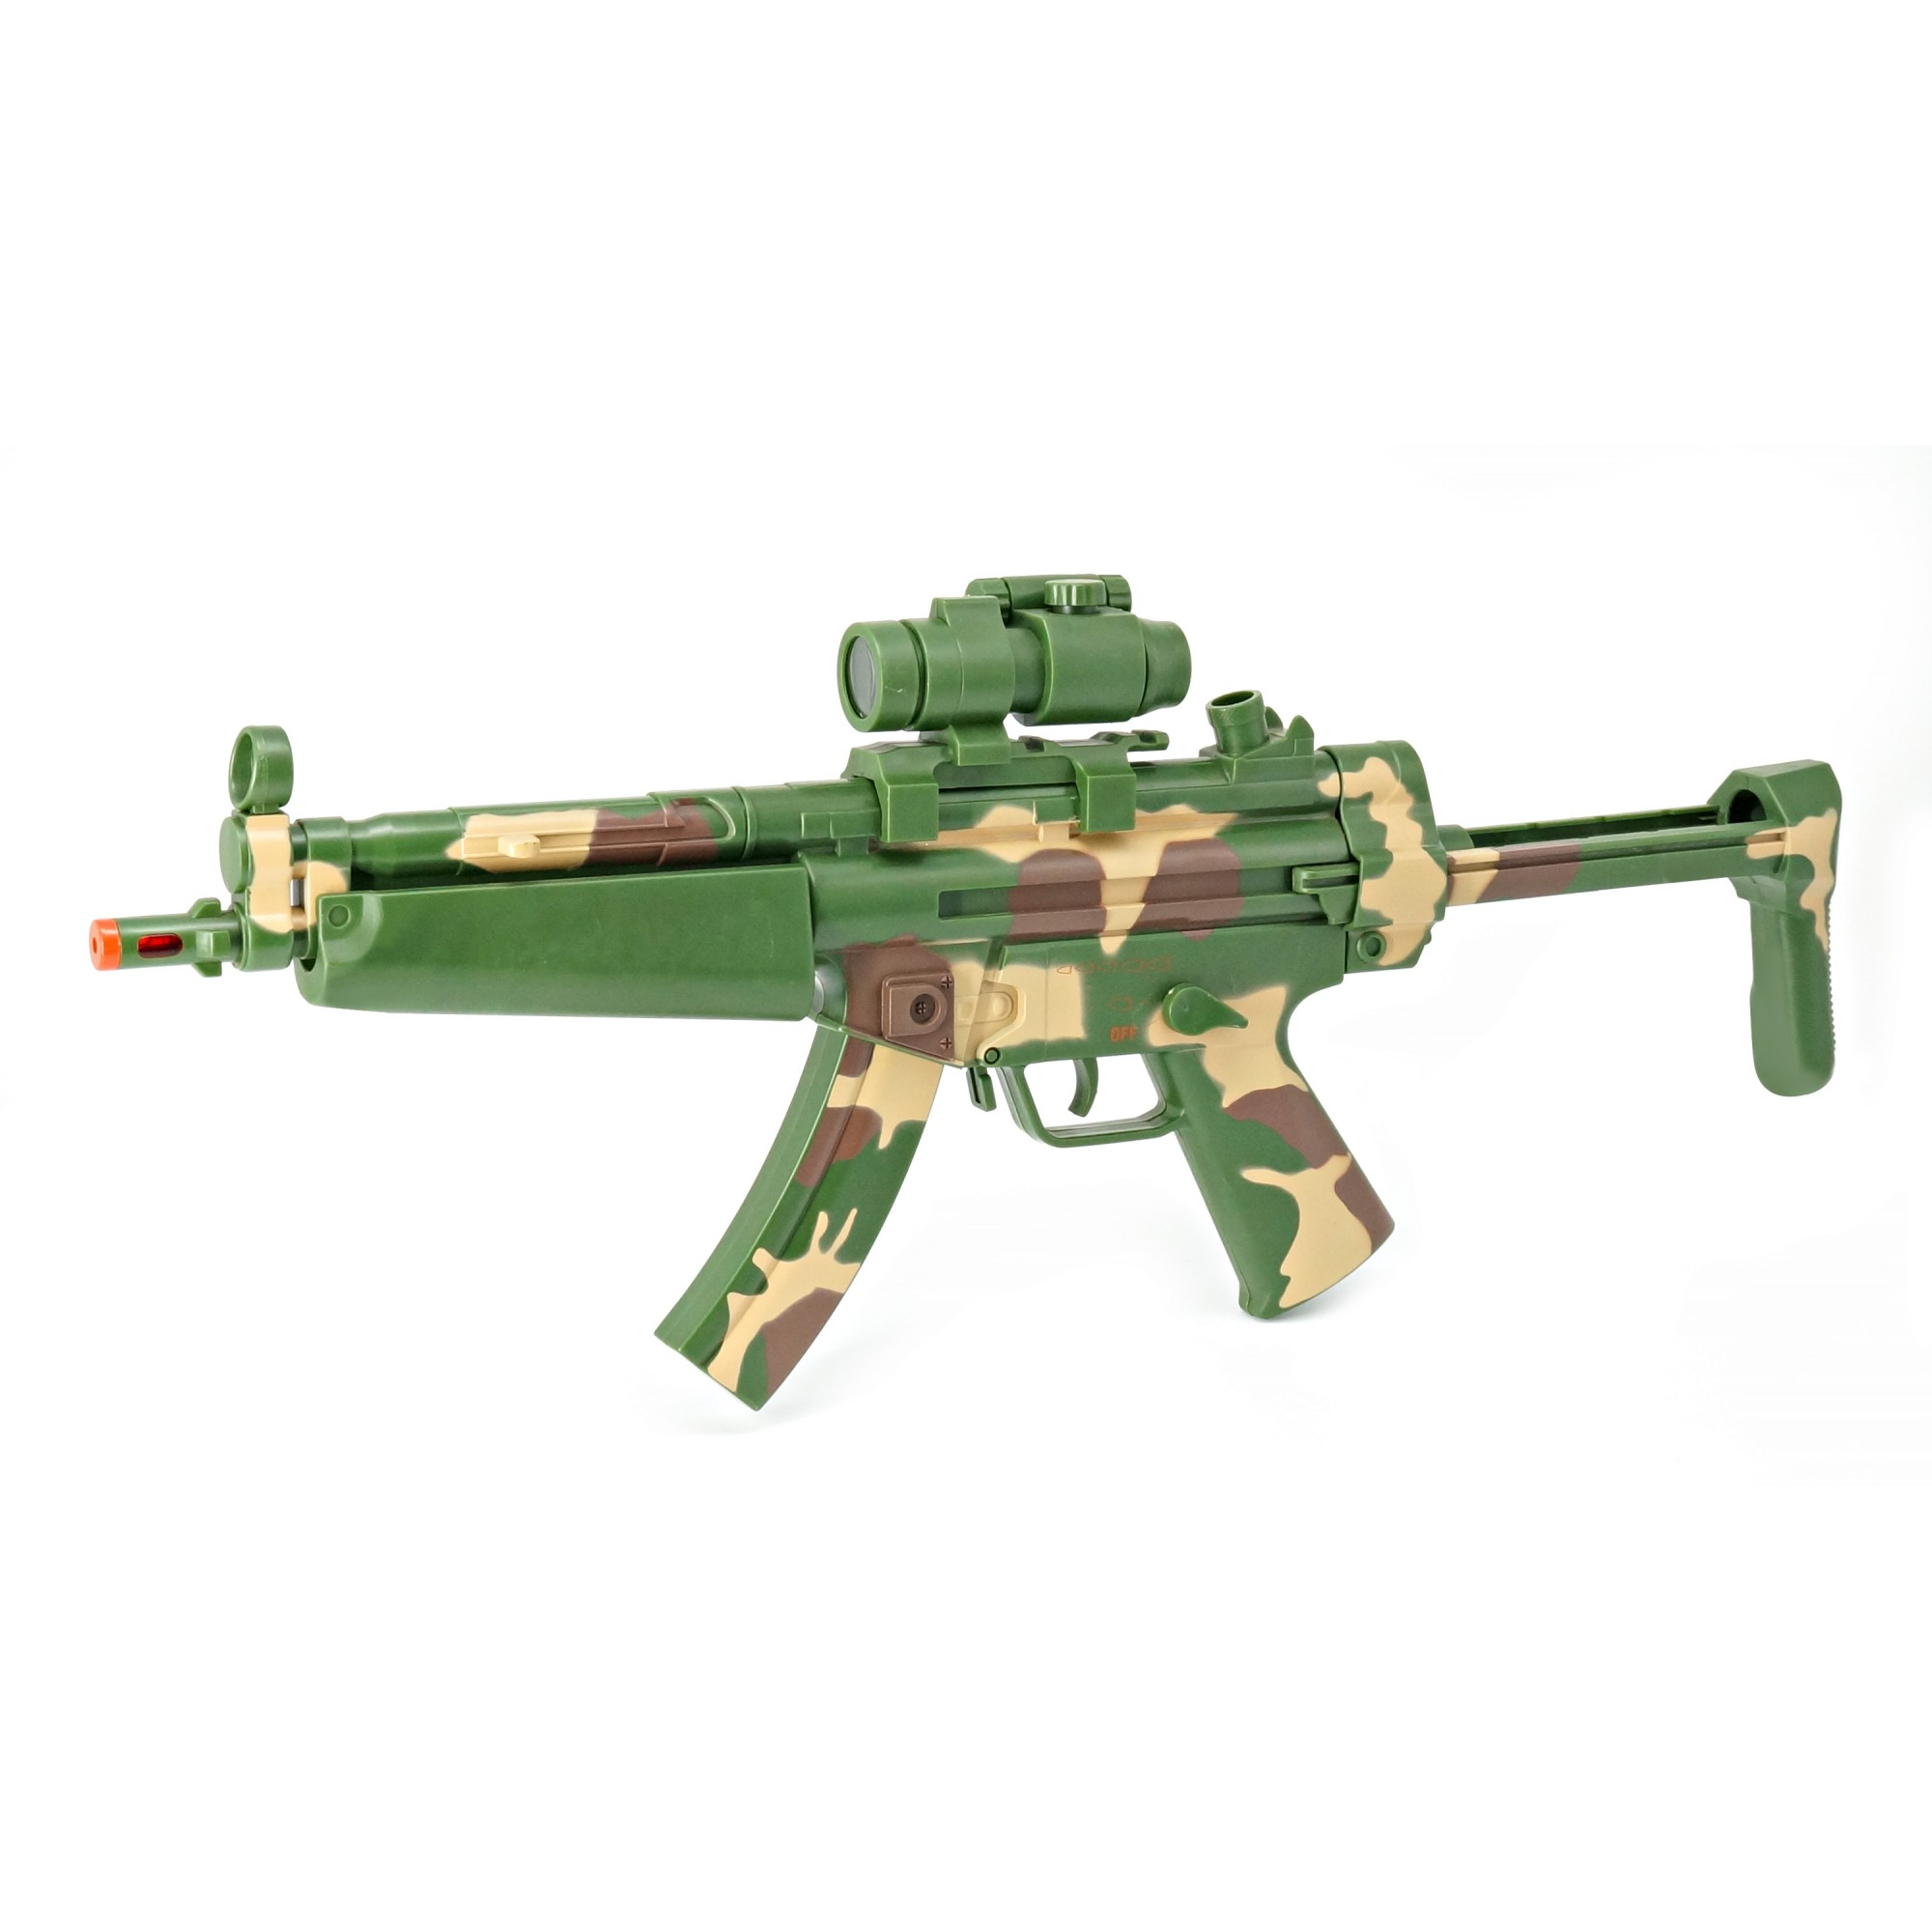 Combat MP5 A5 W/Light, Sound, Vibration & Viewer